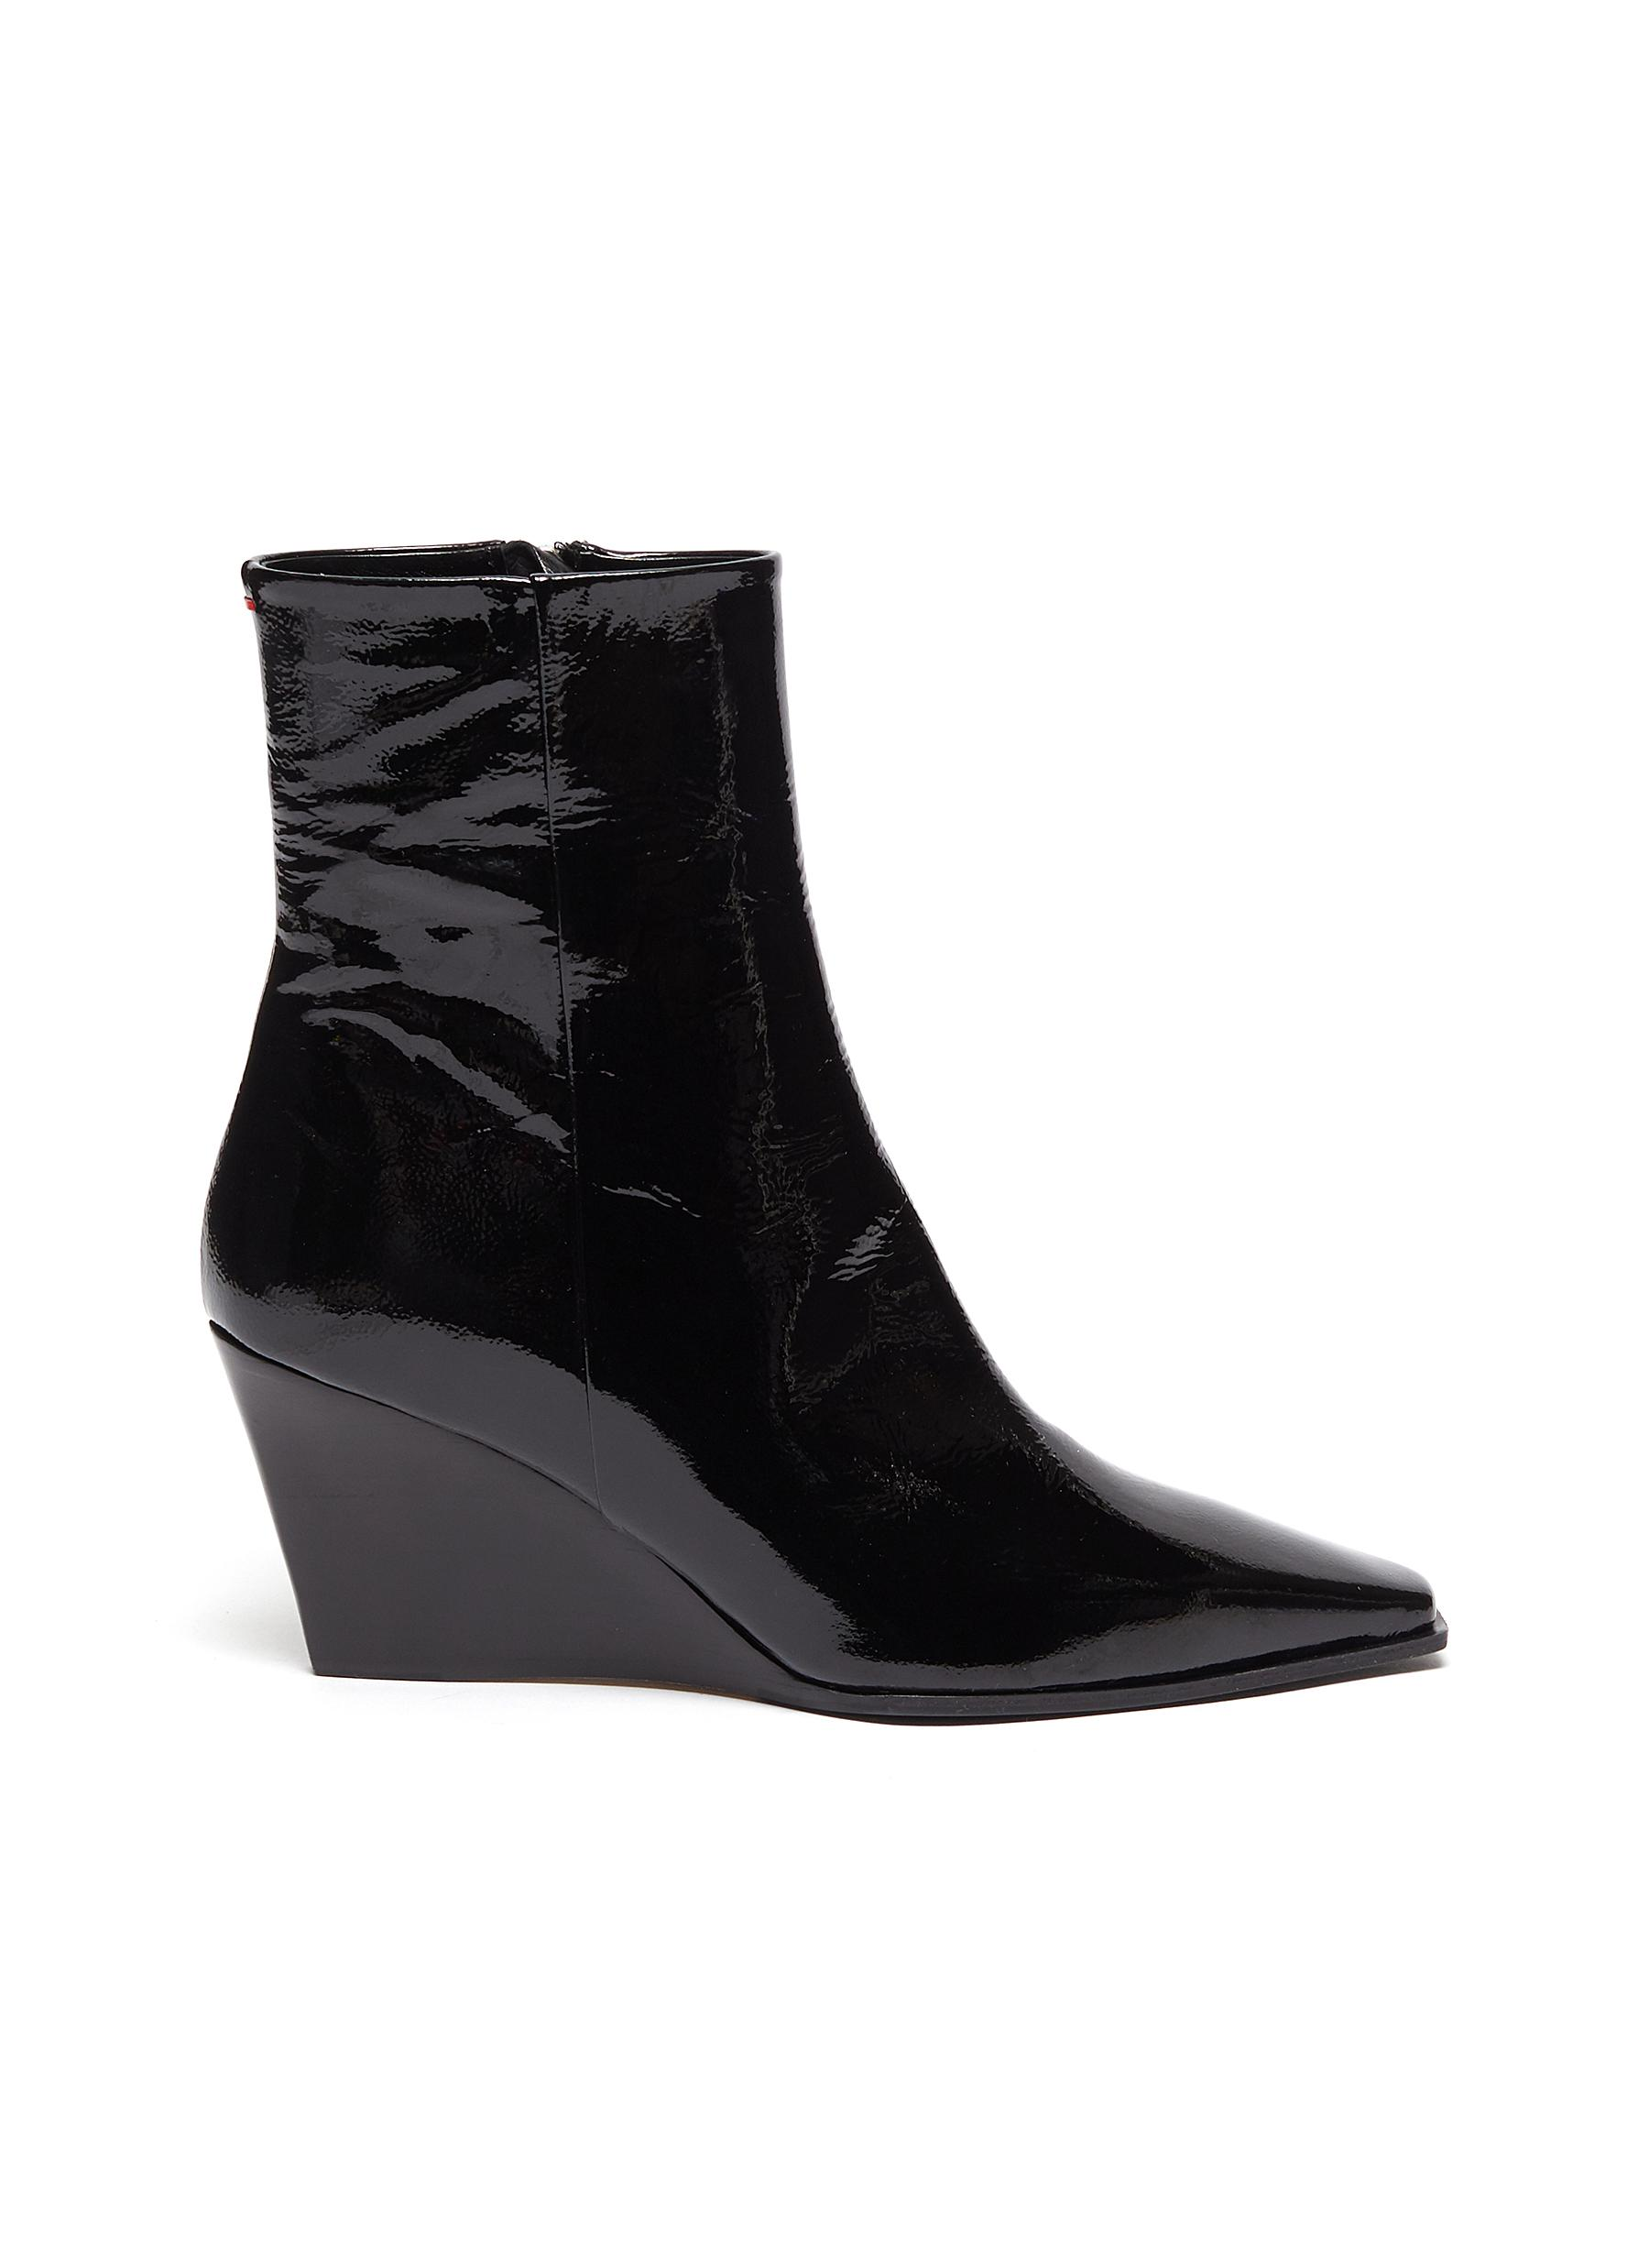 Aeyde Boots Lena wedge leather ankle boots